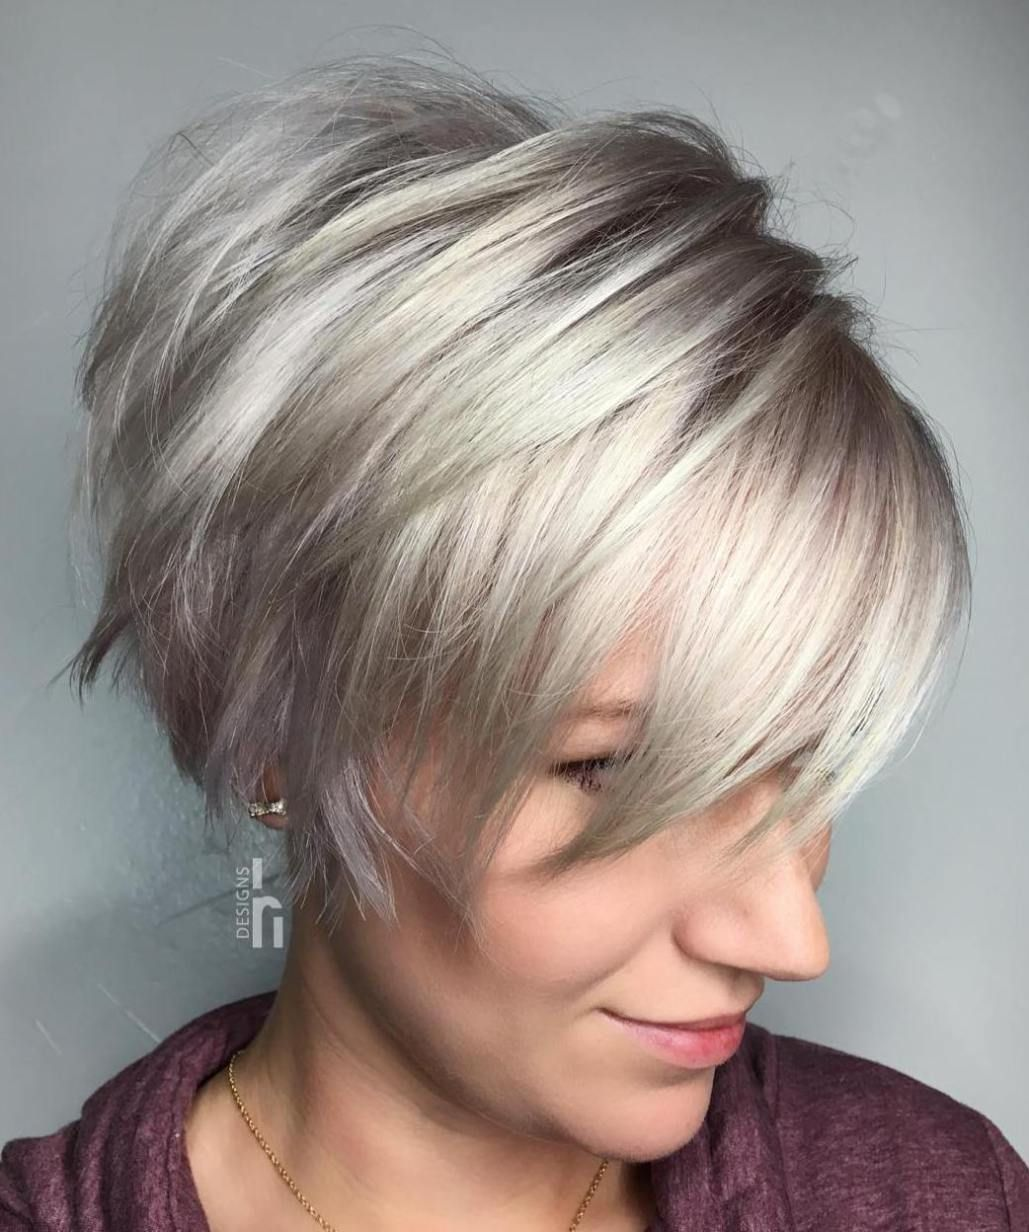 Voluminous Gray Pixie Cut